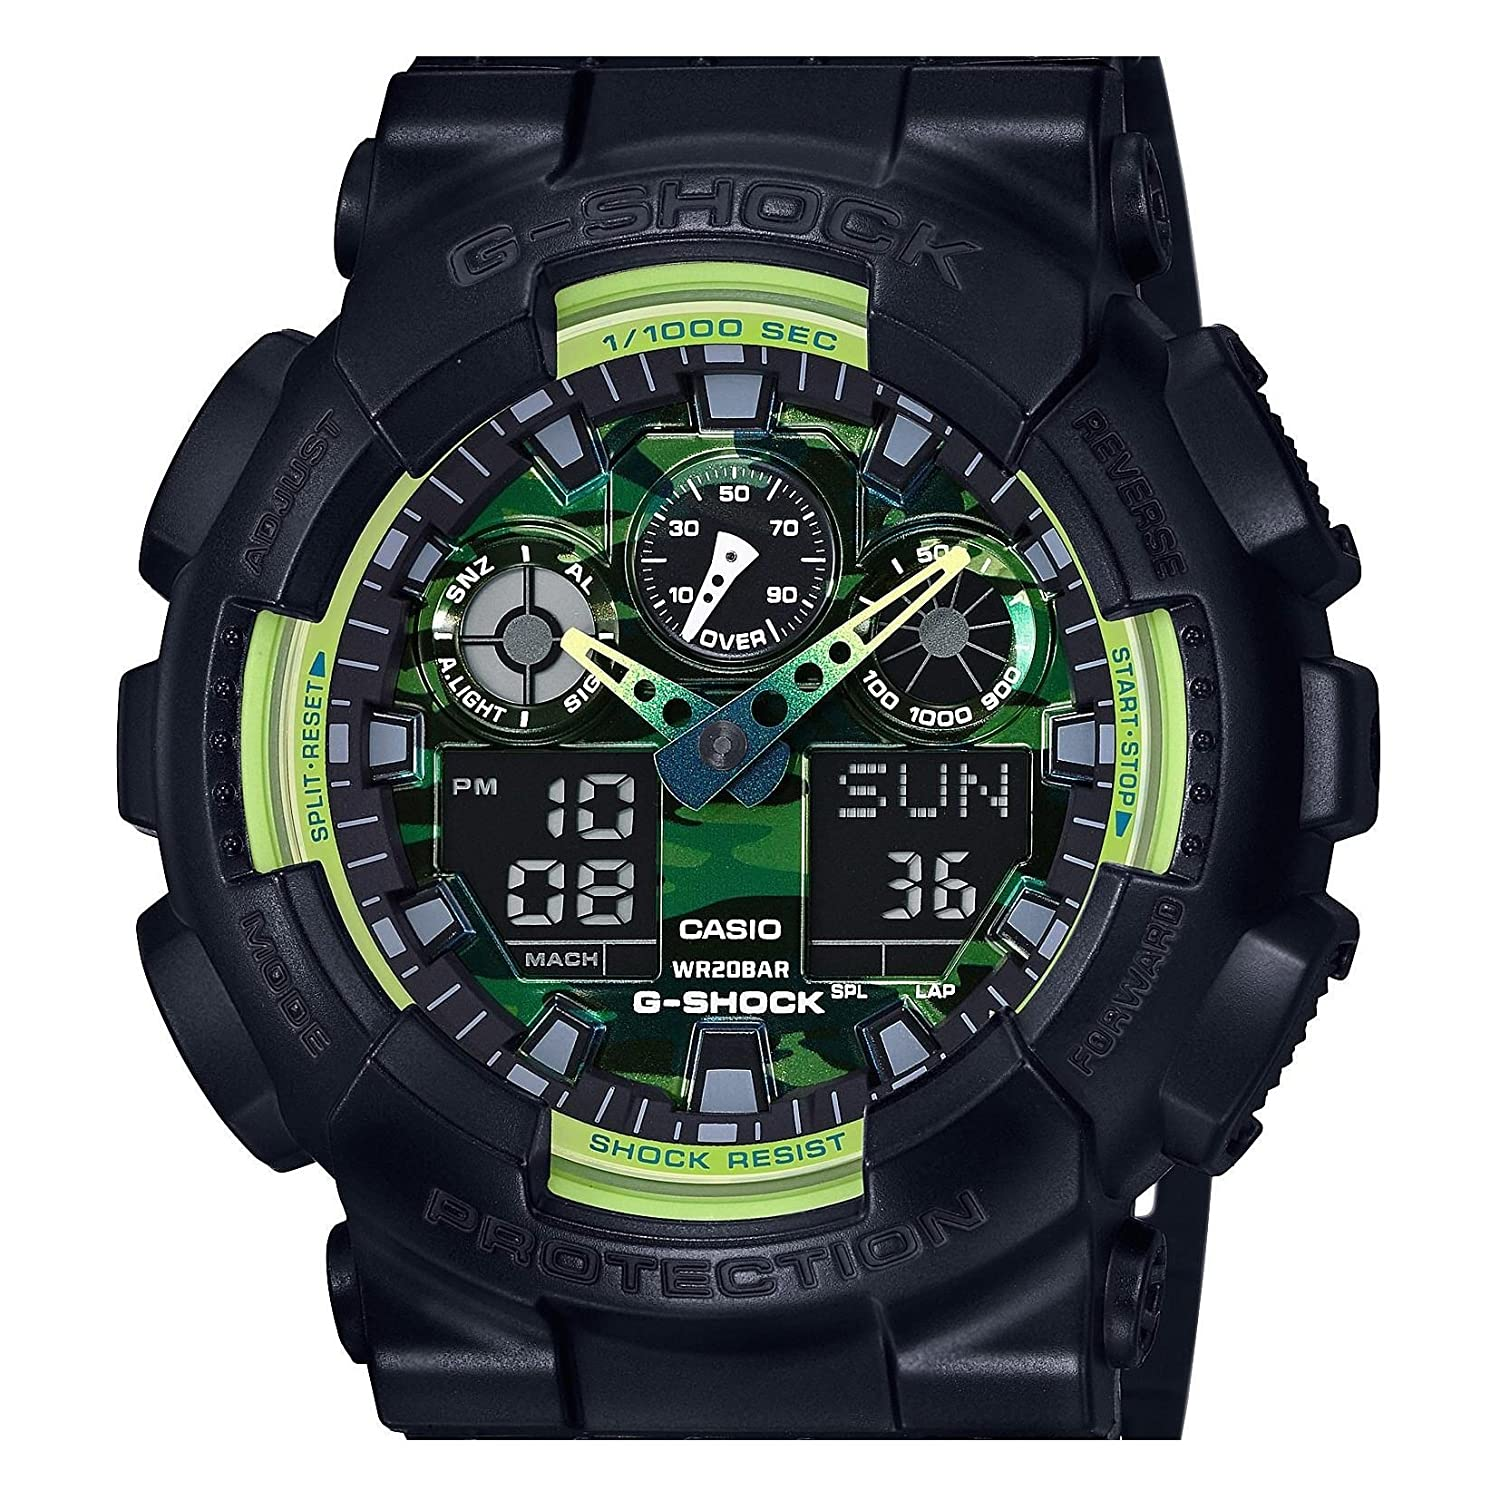 slide flipboard watches on patrol orient beater gear unbreakable